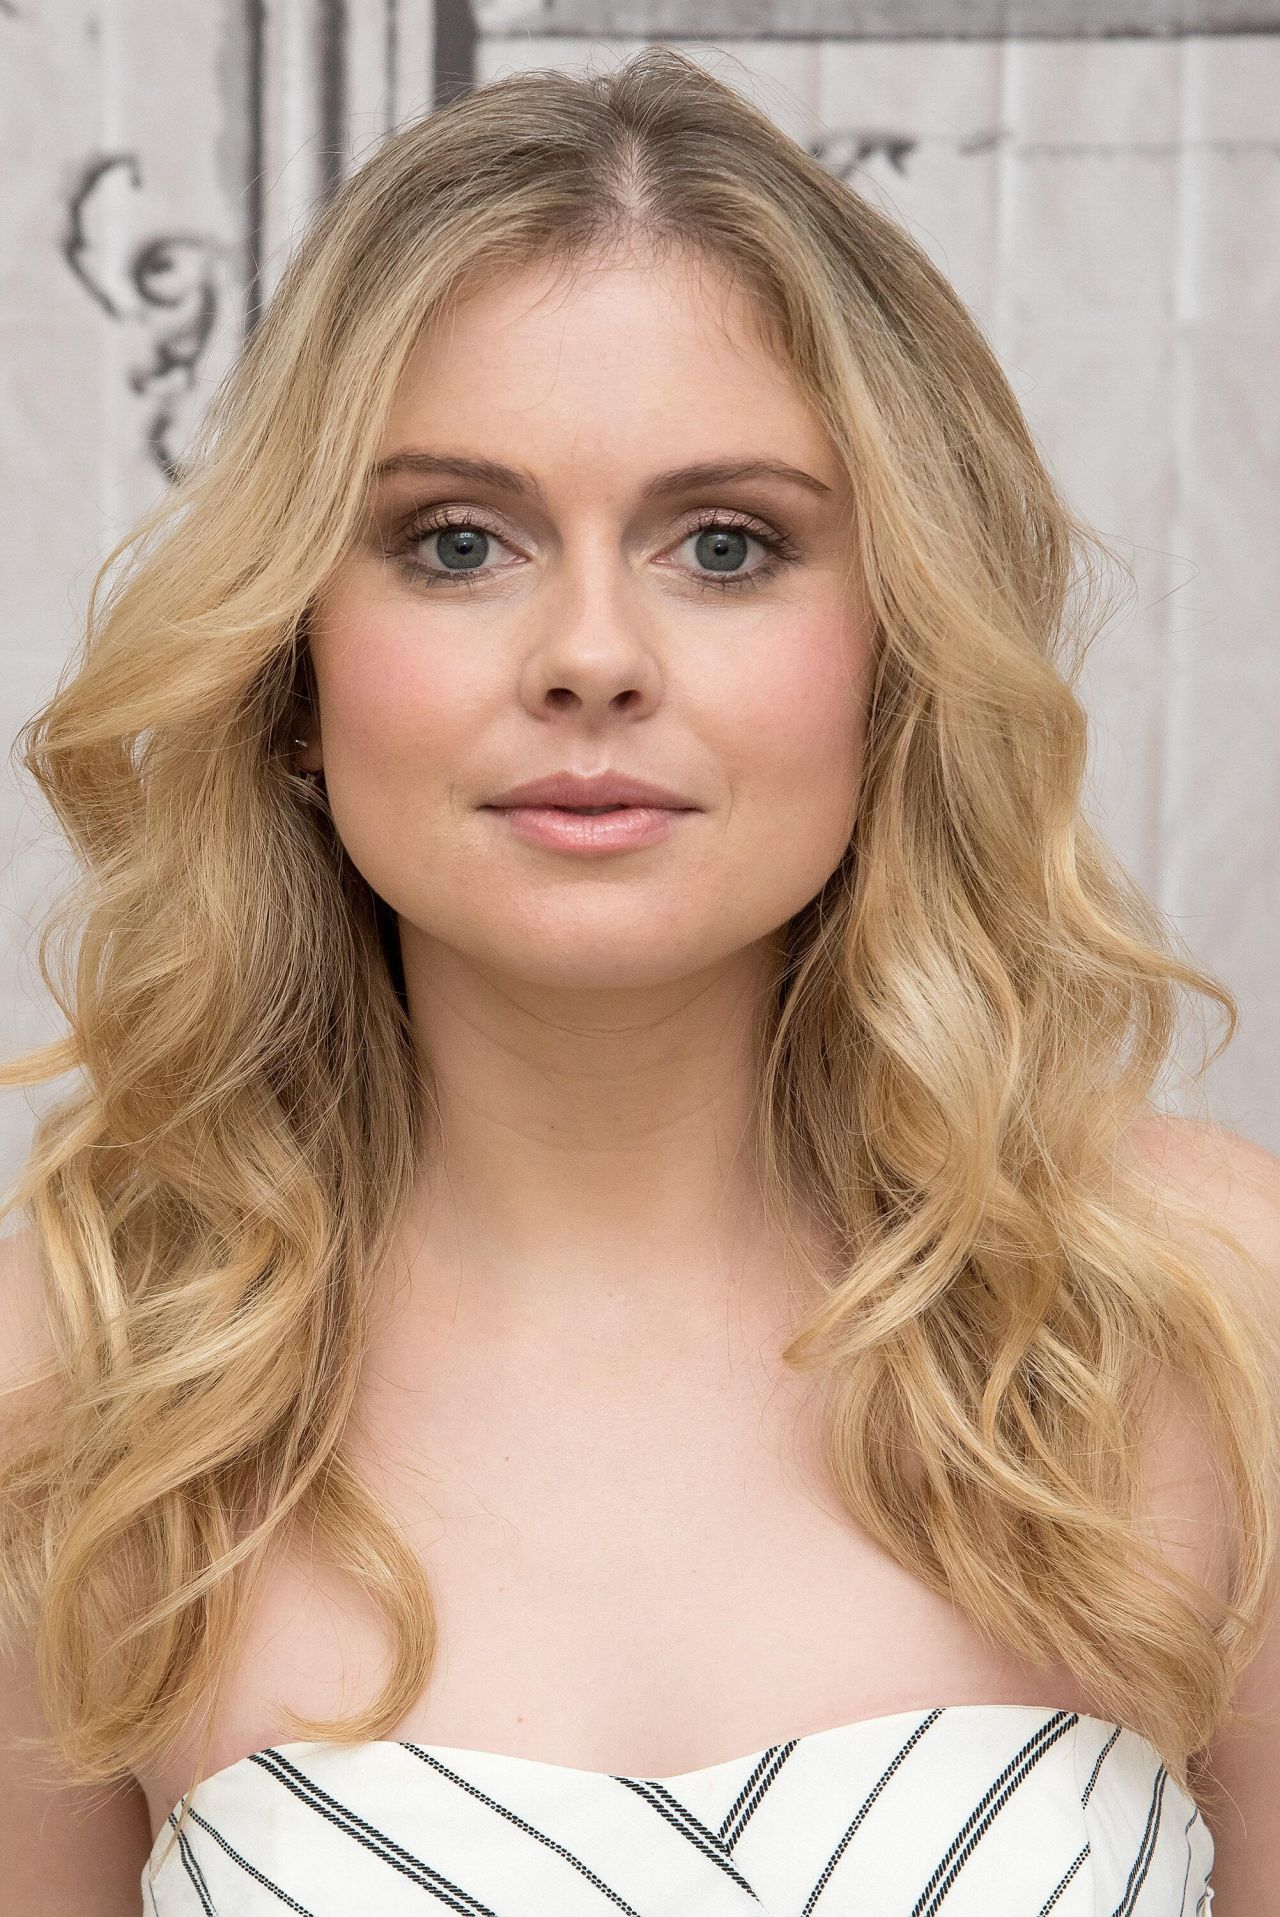 Rose McIver nude (88 photo) Video, YouTube, cameltoe